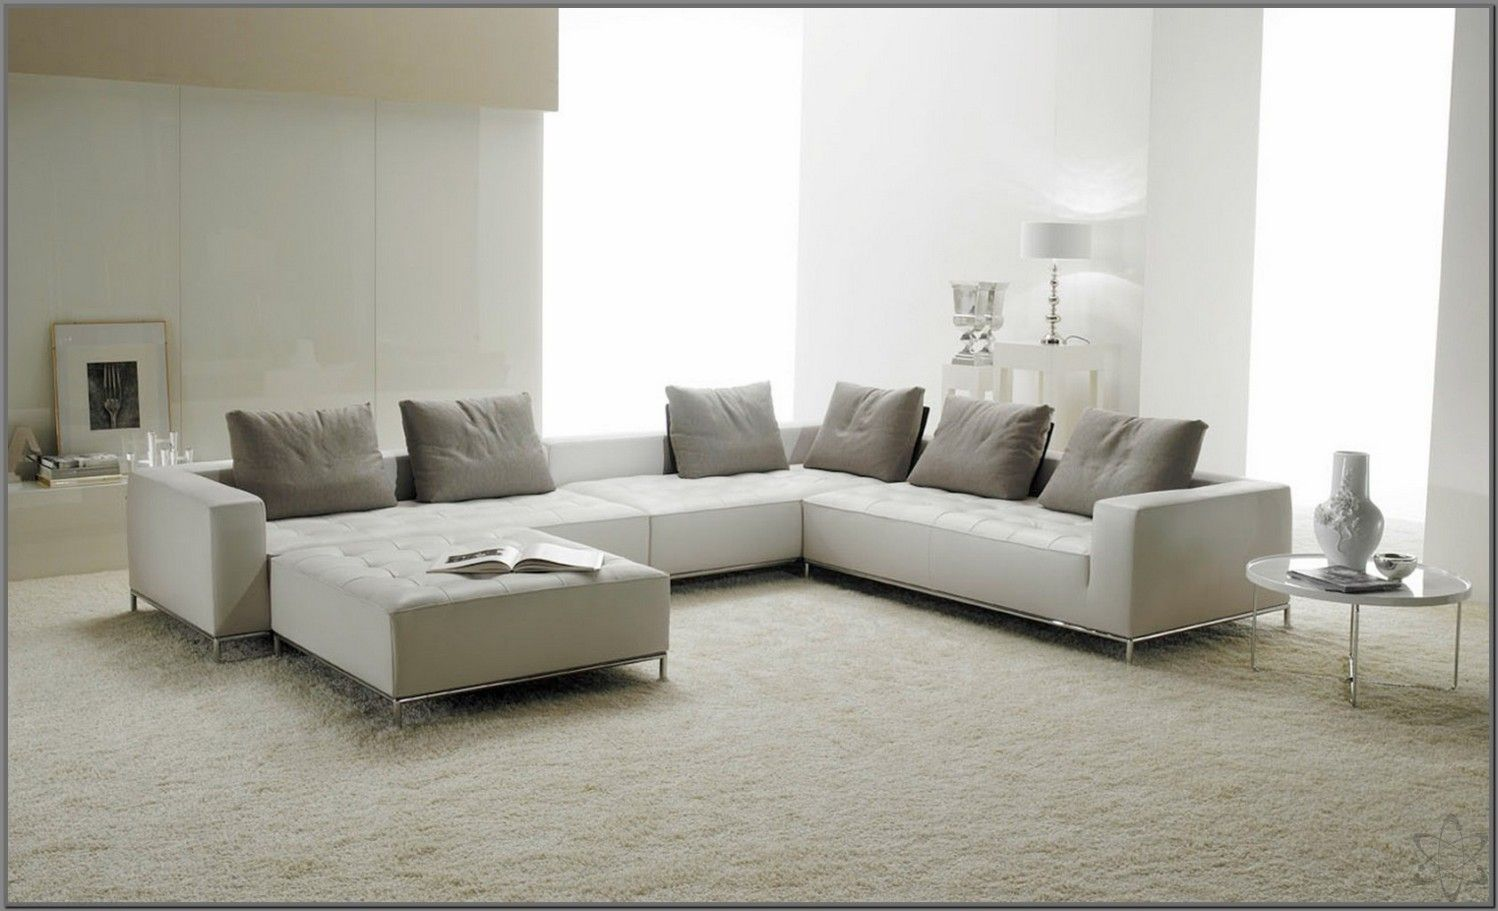 Minimalist Sofa Designs For A Perfect Homey Feel Minimalist Sofa Sofa Design Luxury Sofa